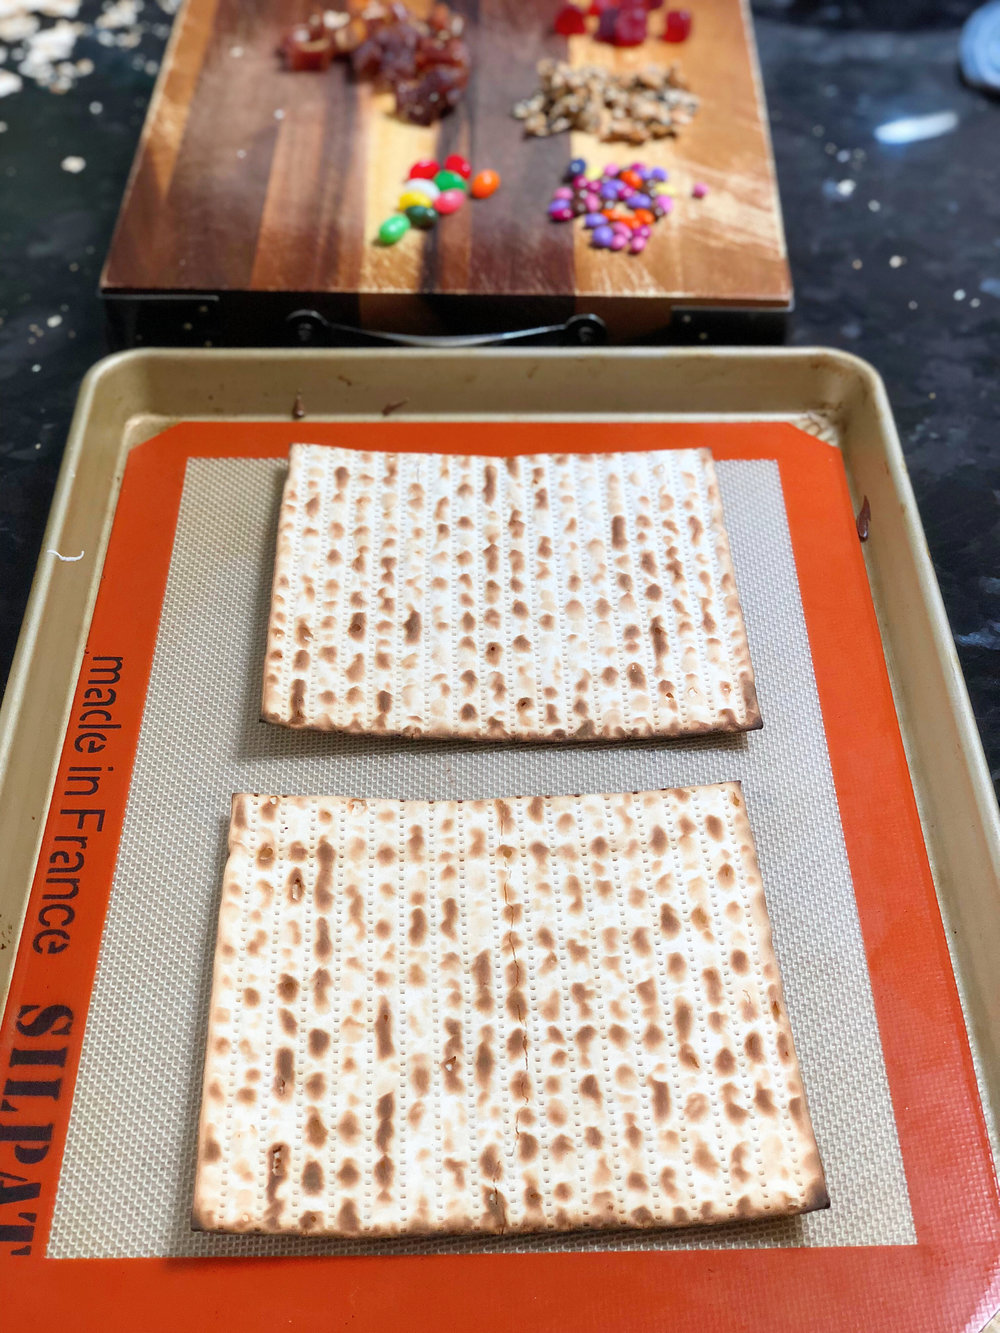 1. Place two pieces of matzah onto a sil pat (or parchment paper) lined sheet pan.